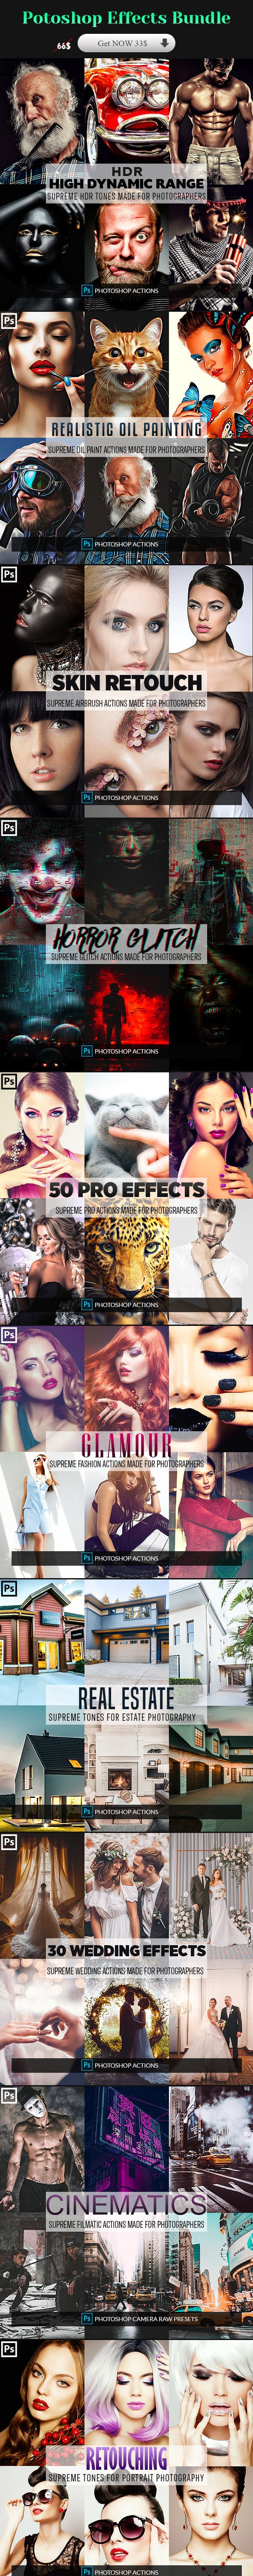 Photoshop Effects Bundle - Photo Effects Actions